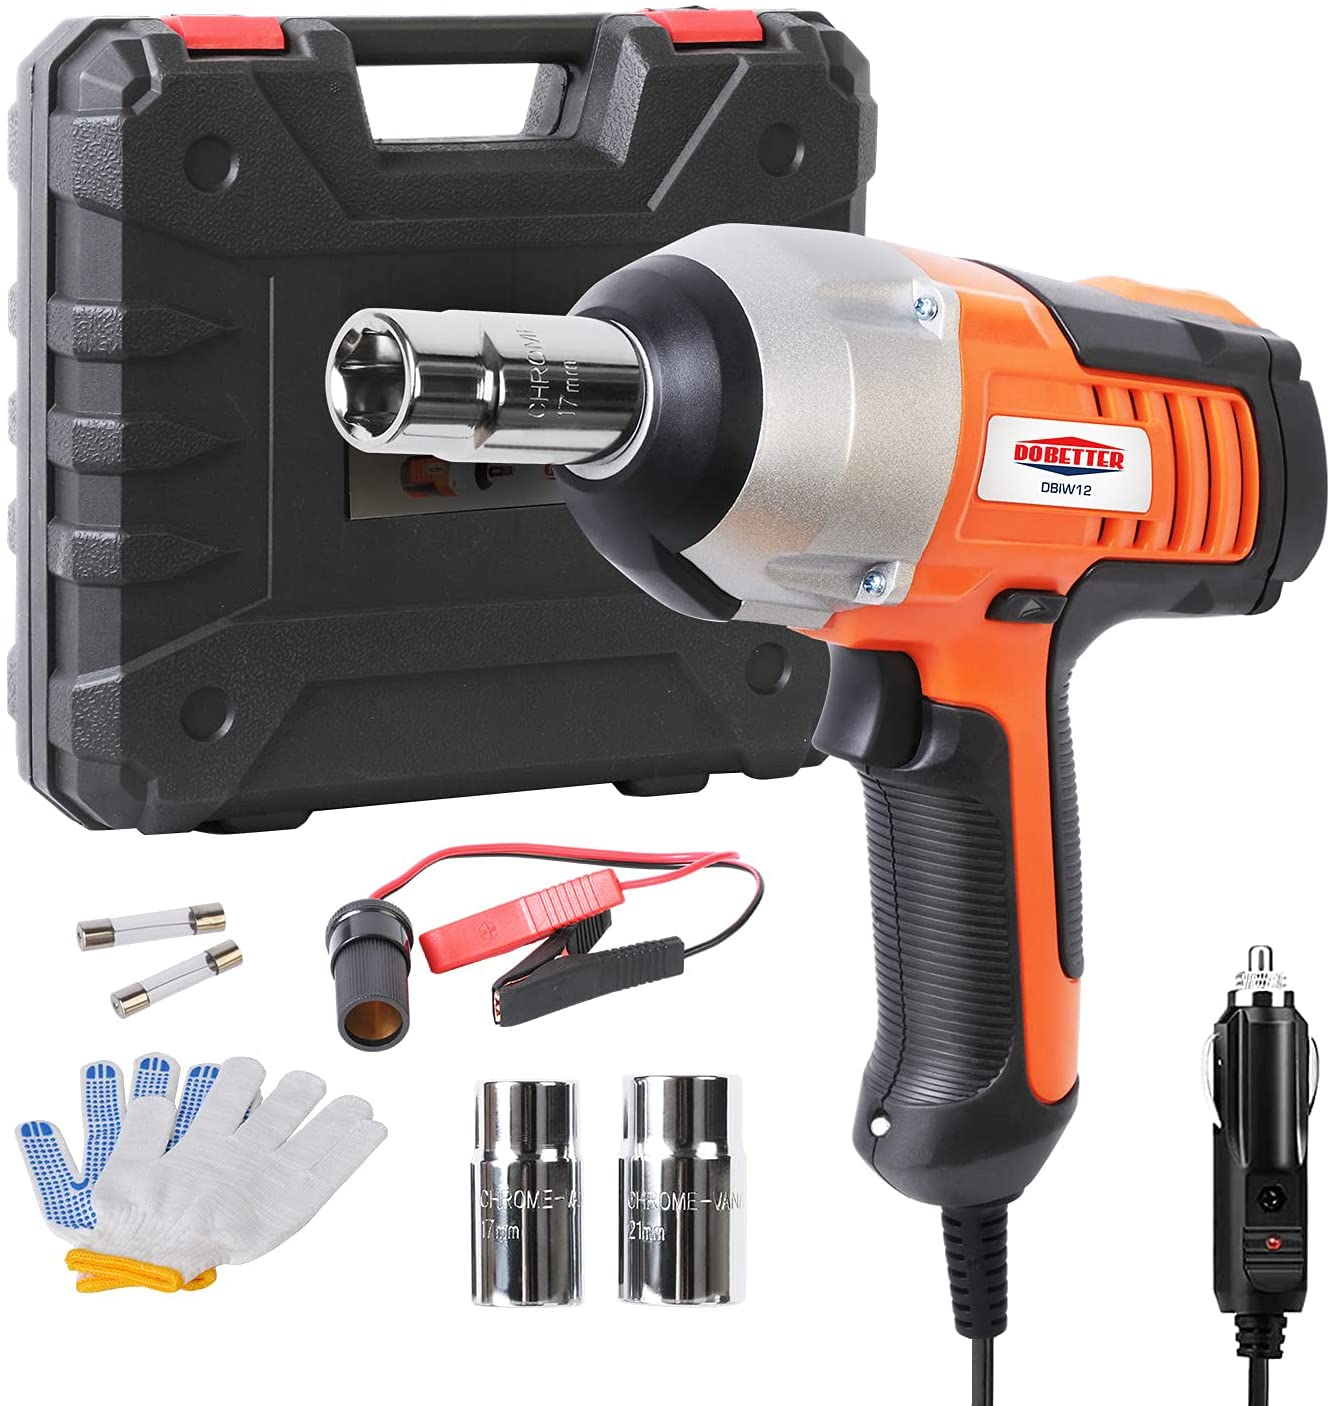 Dobetter-DBIW12 Corded Electric Car Impact Wrench, 12V